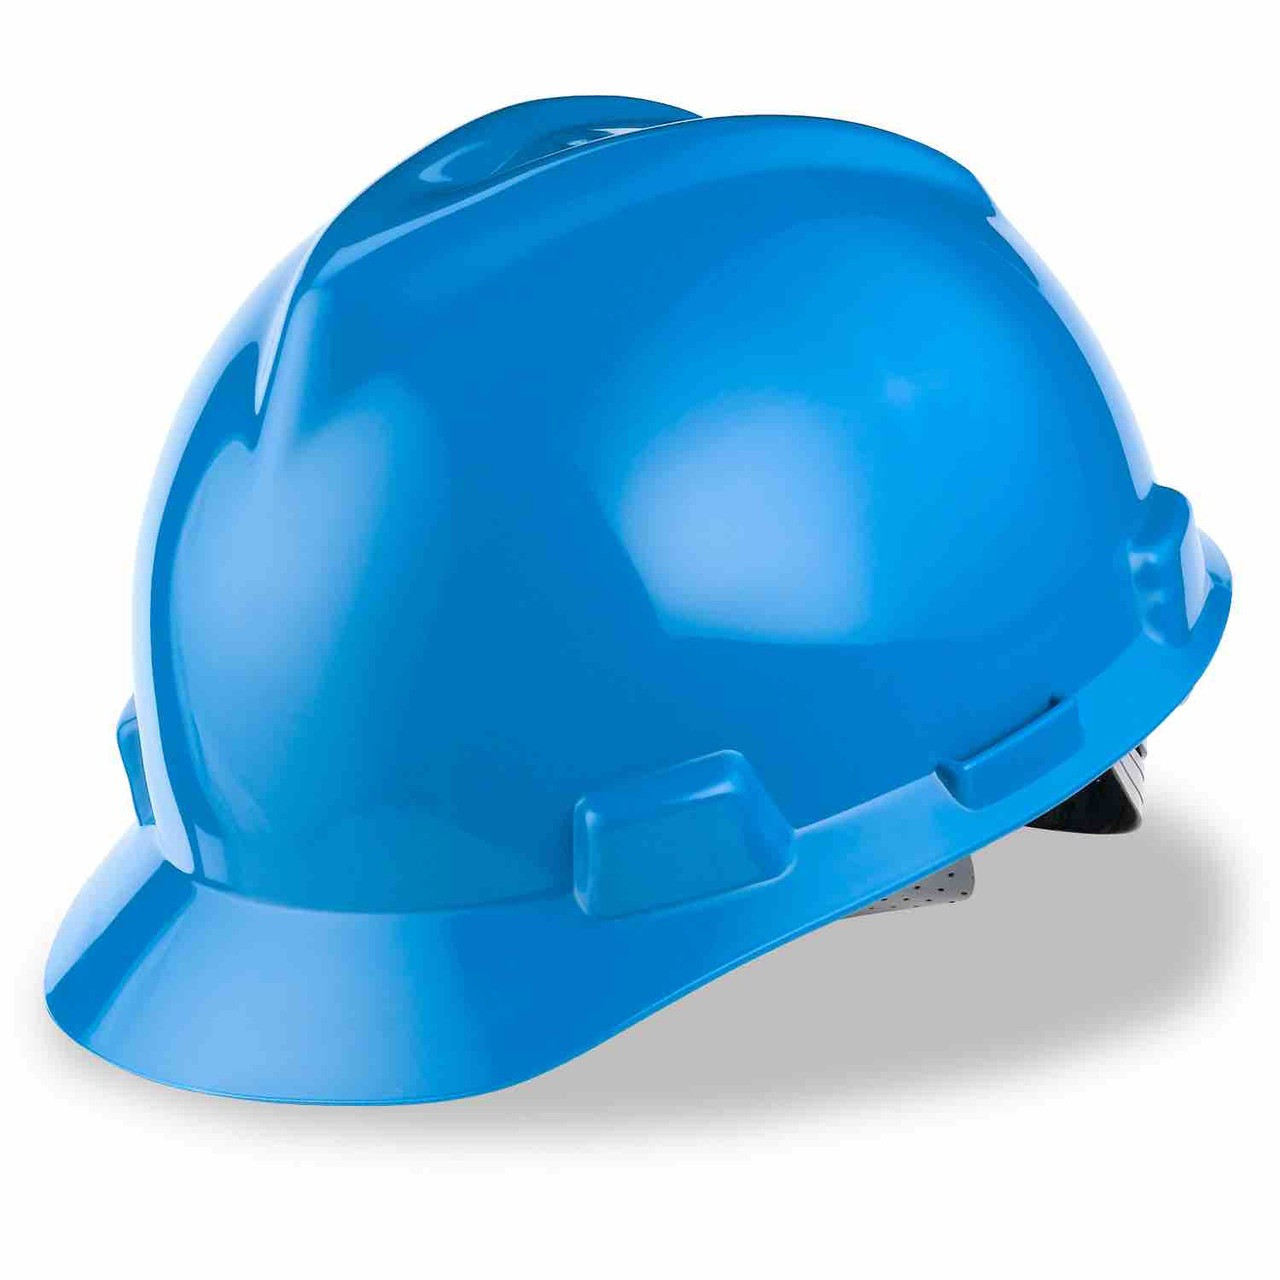 6bedf9fd Buy from GZ Industrial Safety Supplies Safety Helmet V-Guard